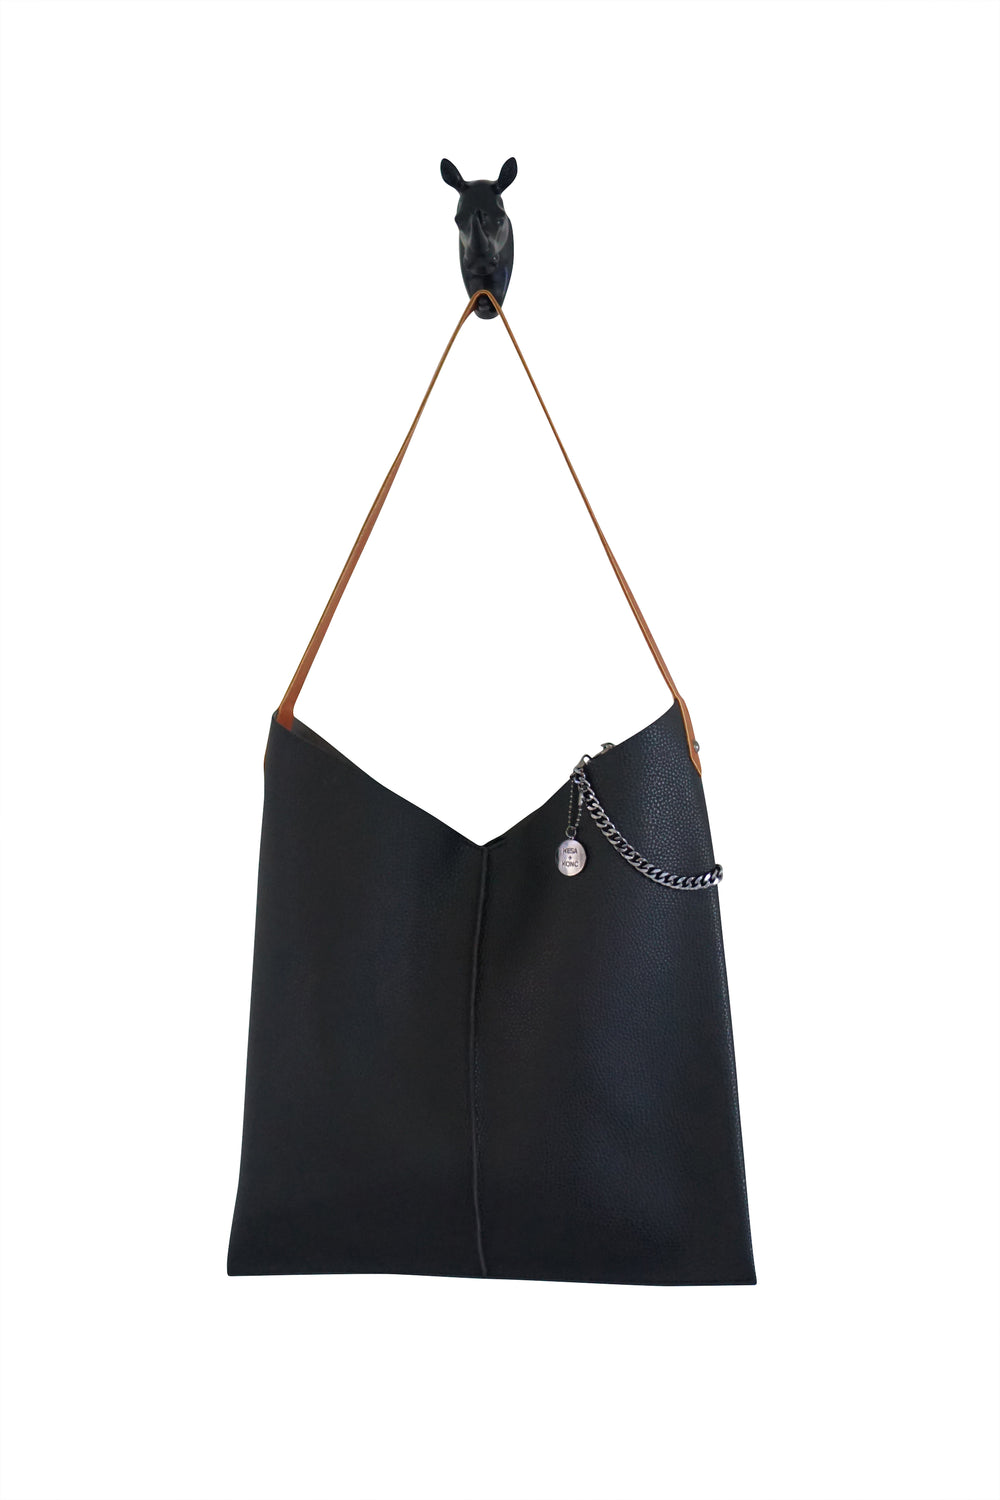 Kesa + Konc Vegan Leather Black Talin Tote Bag